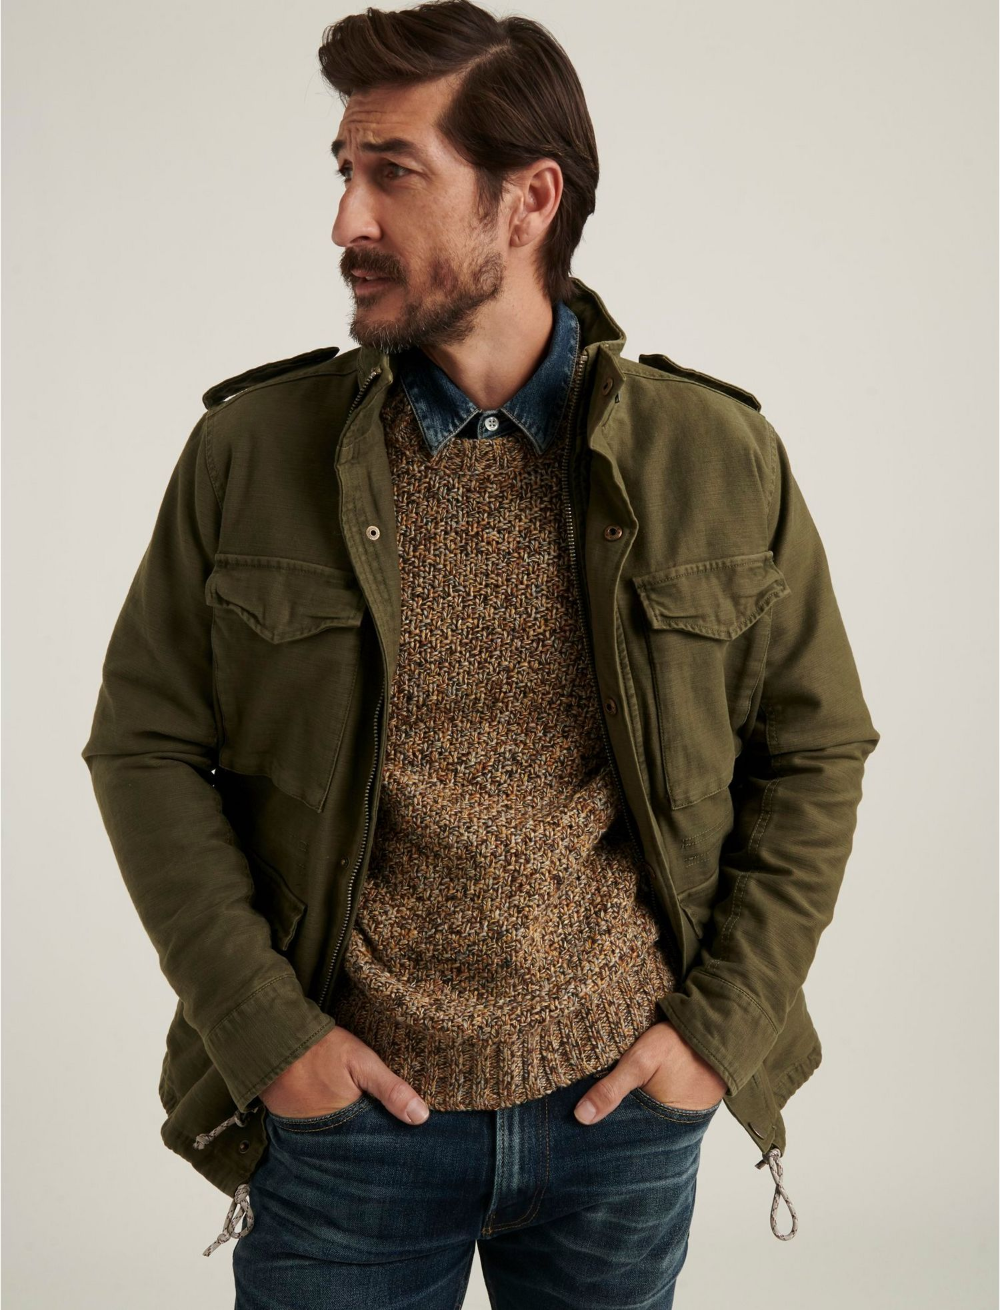 M65 Field Jacket With Removable Sherpa Lucky Brand M65 Field Jacket Field Jacket Comfy Jackets [ 1310 x 1000 Pixel ]